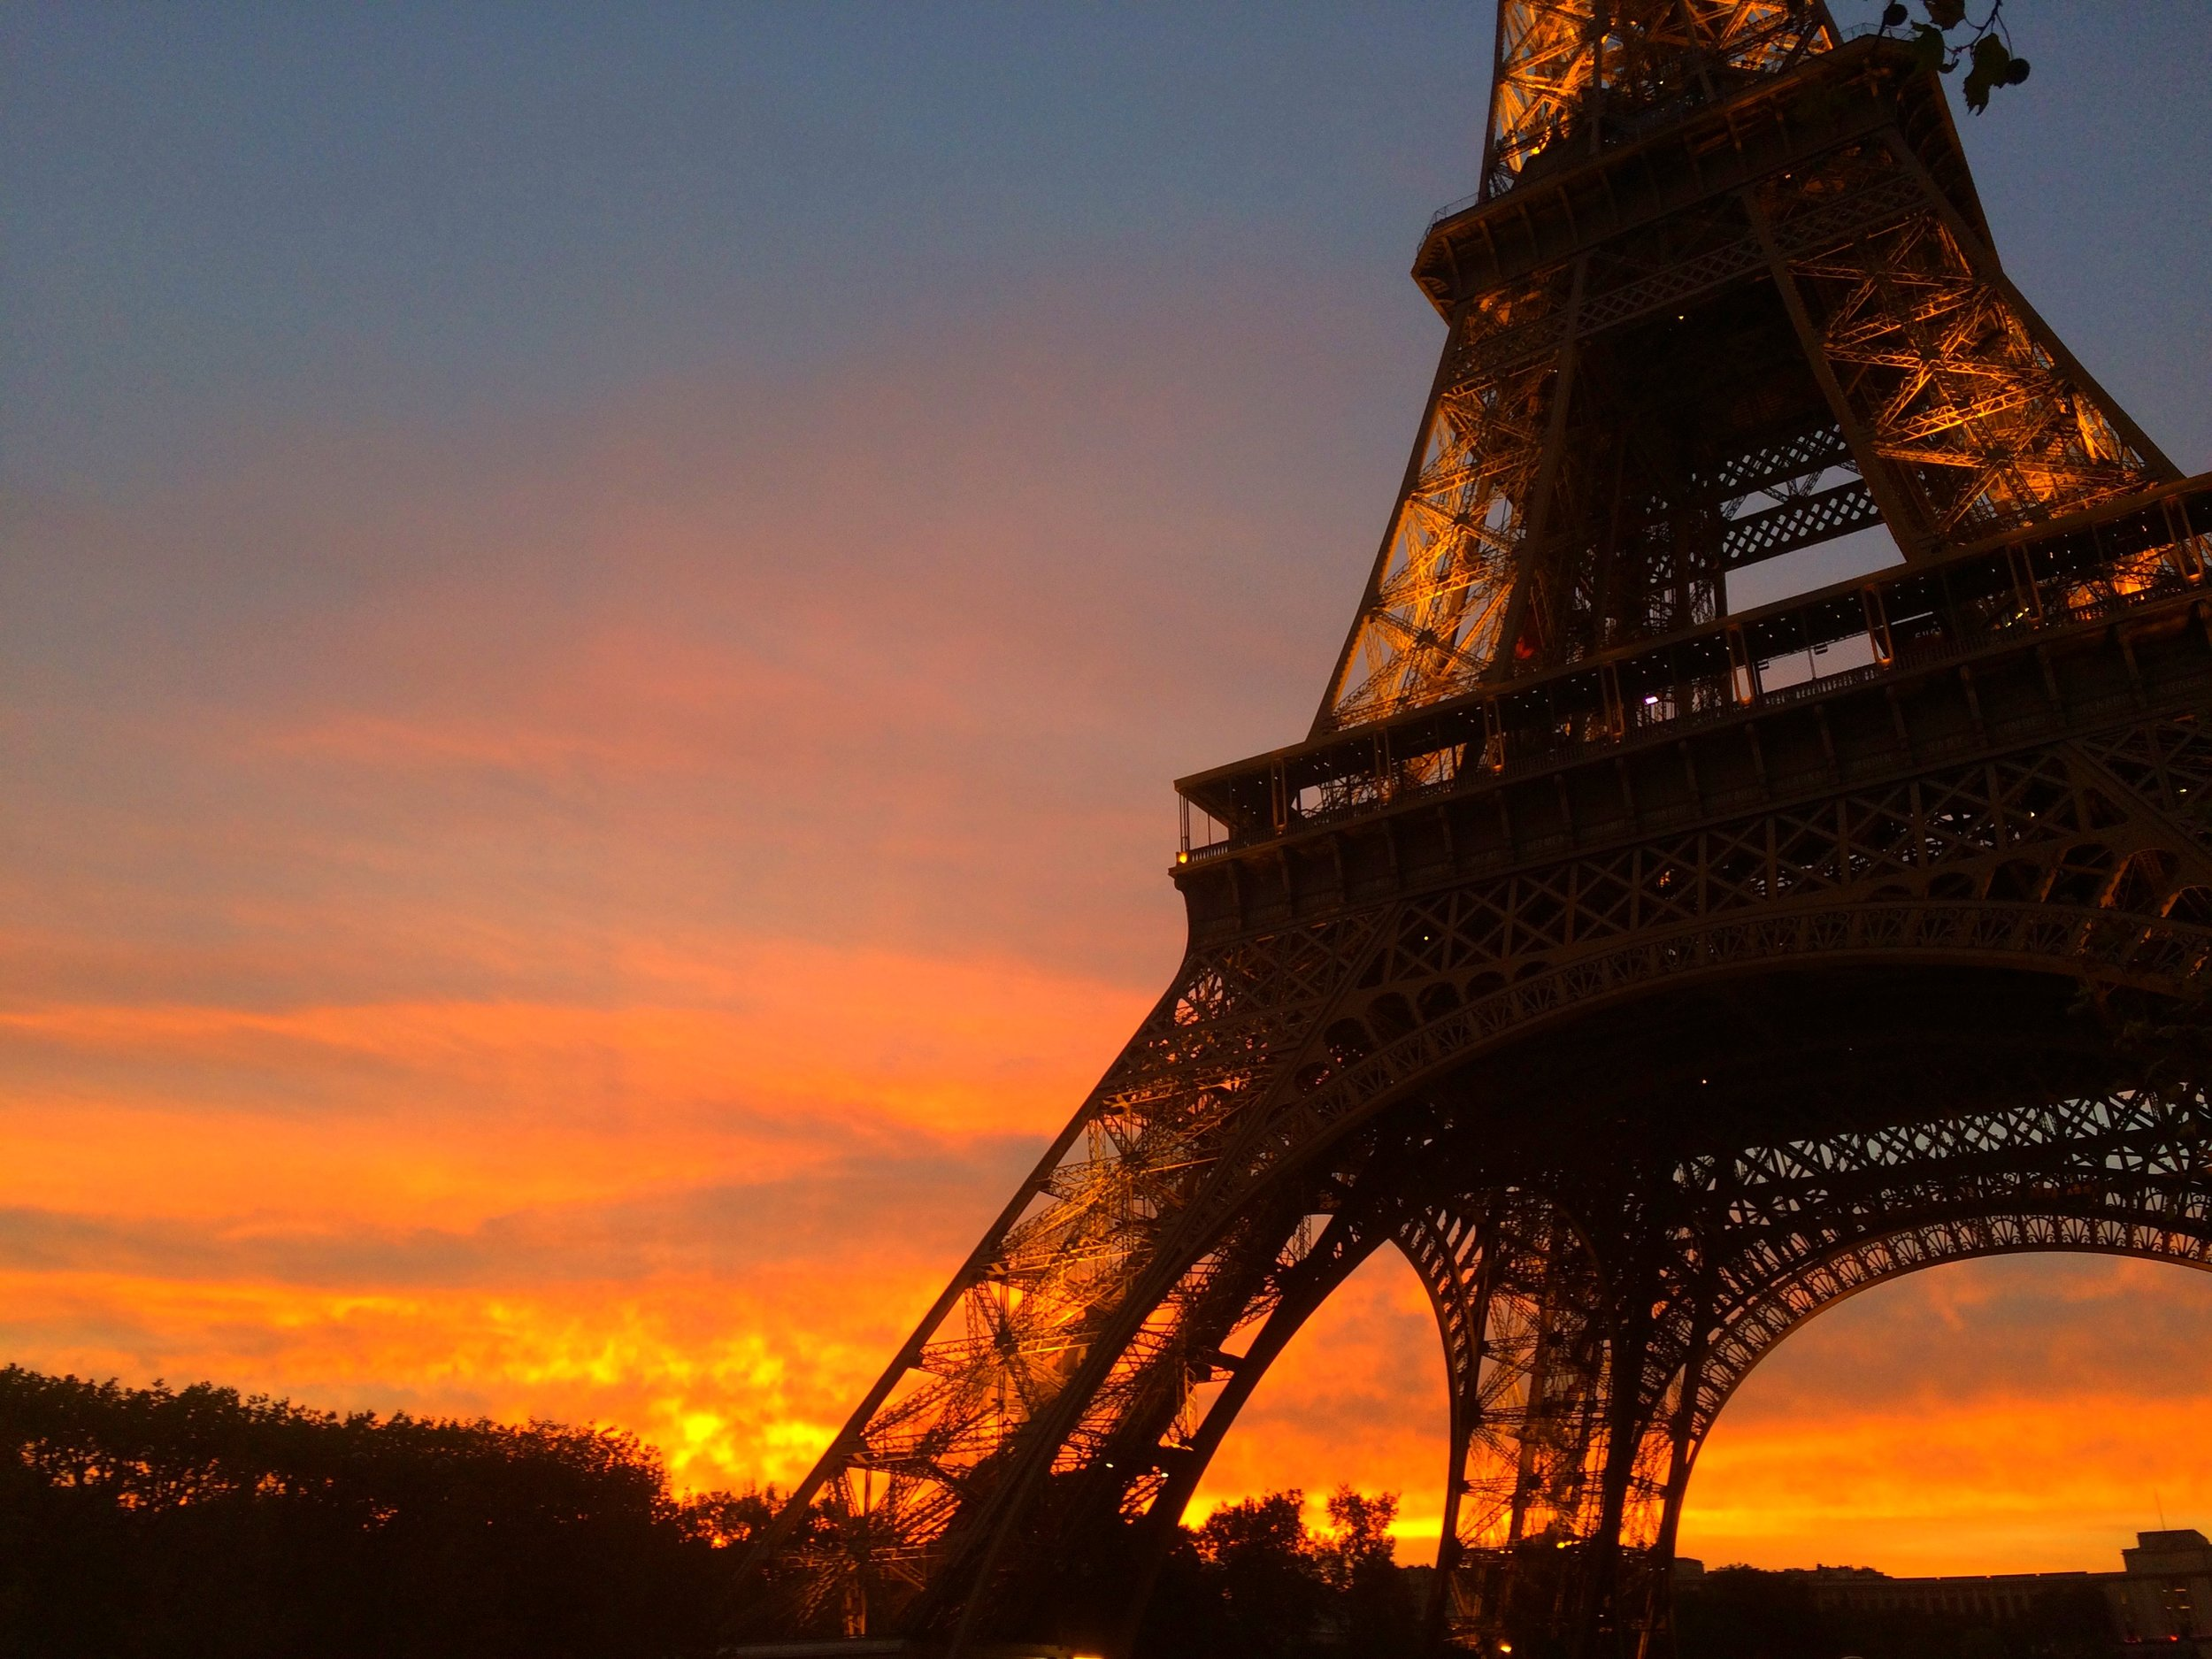 There is nothing more romantic than the Eiffel Tower at sunset.